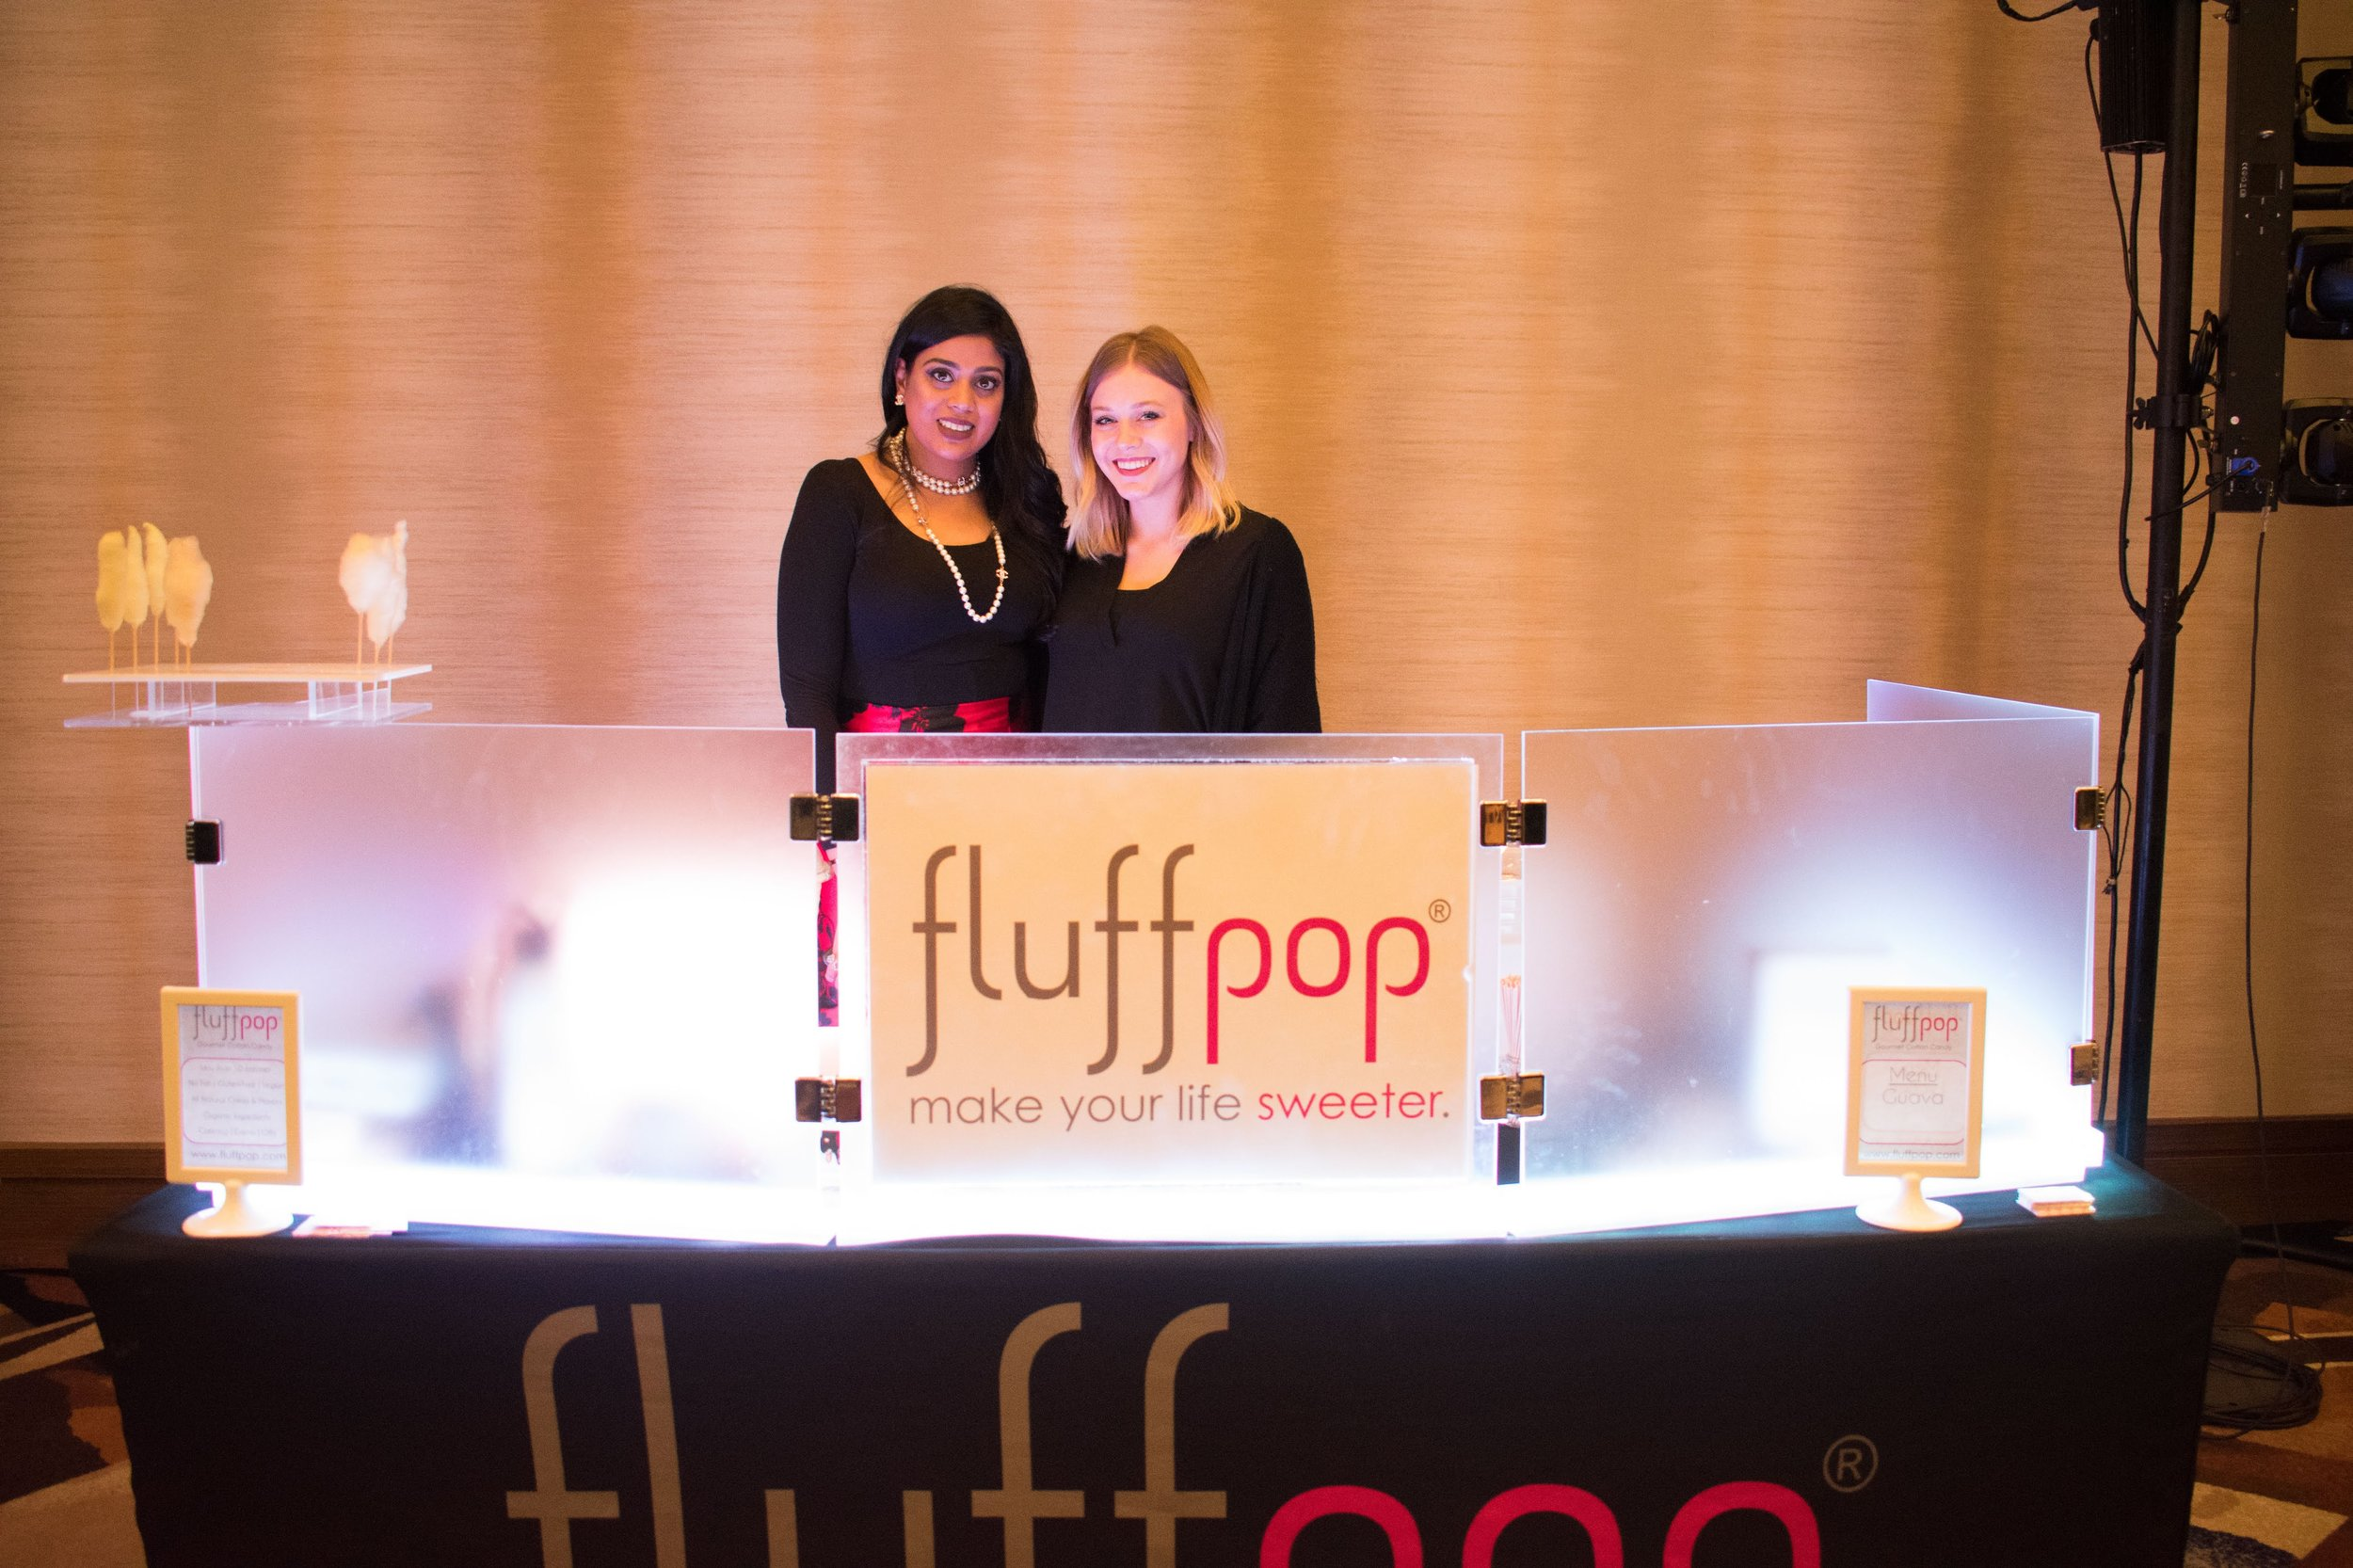 Fluffpop artisanal mini cotton candy- Oprah Winfrey Event